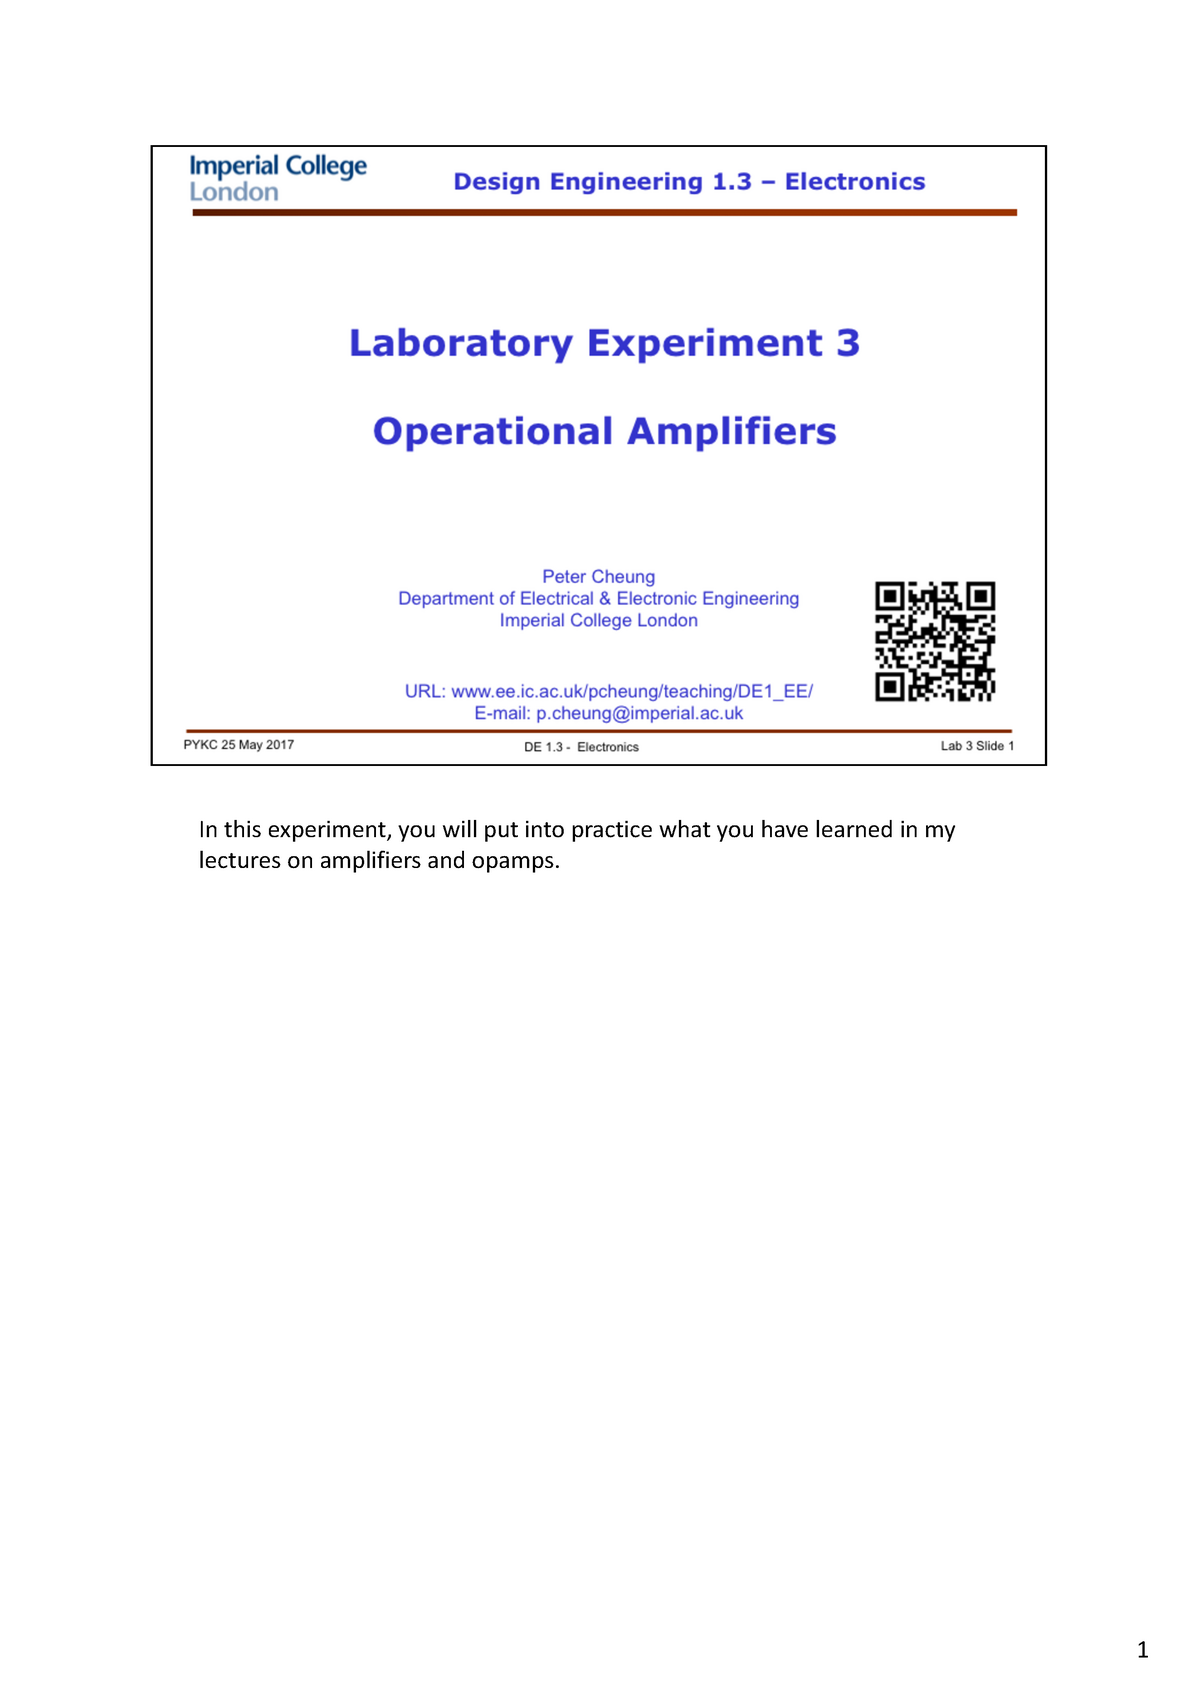 2016-2017 Lab 3 - Operational Amplifiers - DE1 3